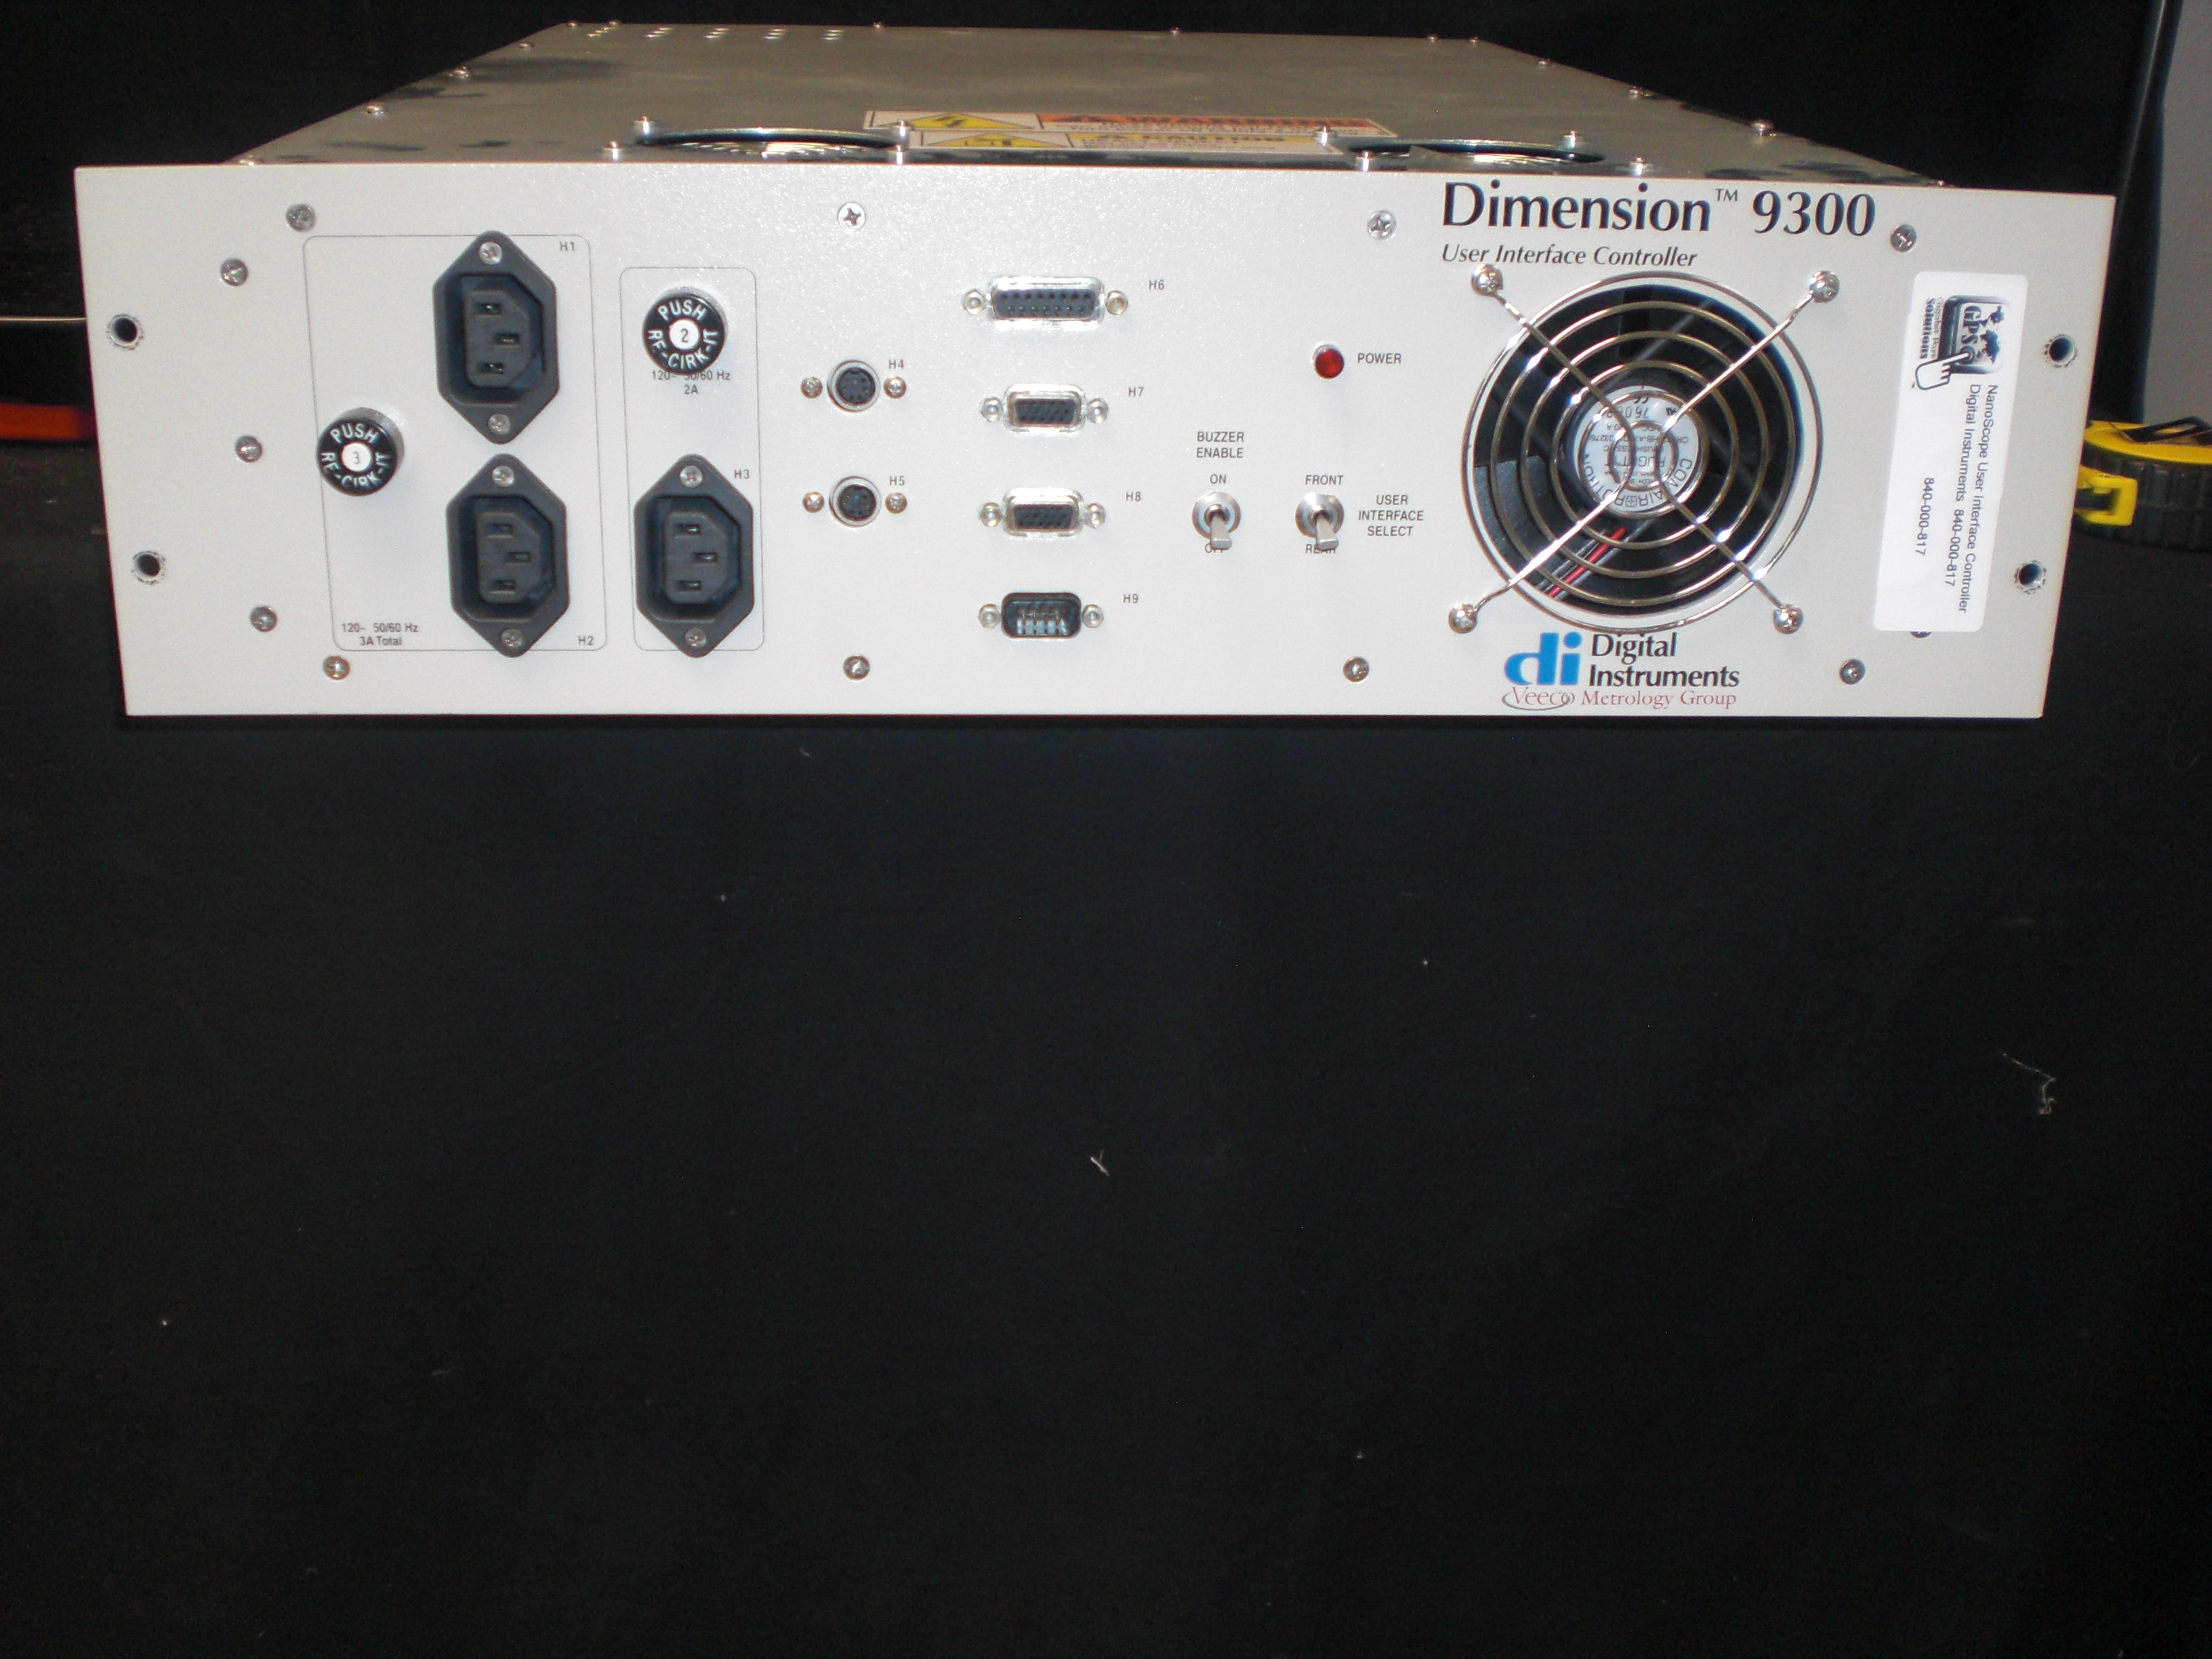 Controller Veeco 840-000-817 Dimension 9300 User Interface Controller  Digital Instruments